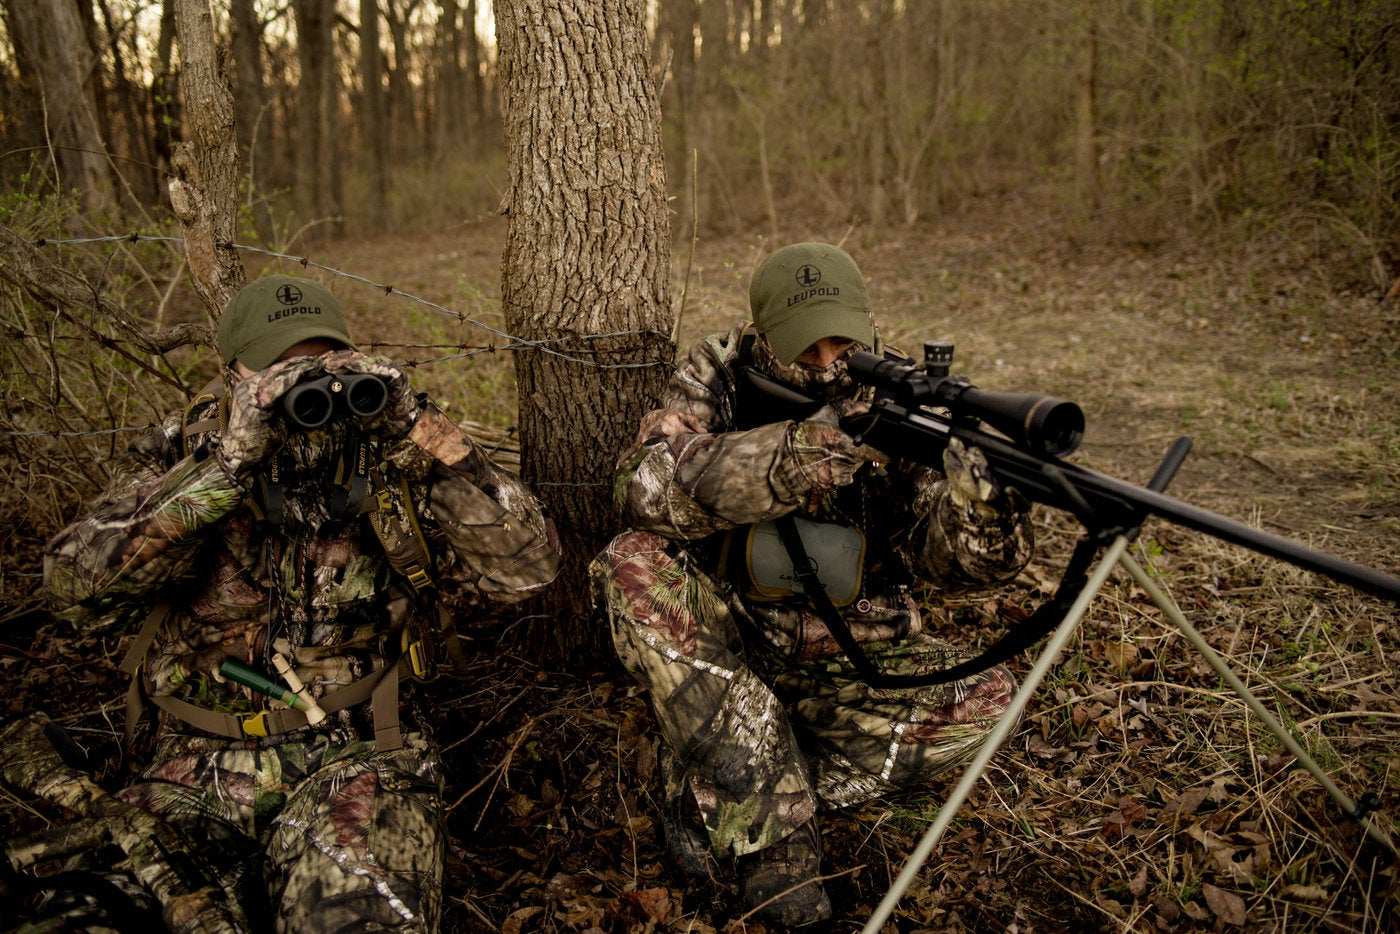 Placing the e-caller in an open area where a predator can find it will make your shot easier.